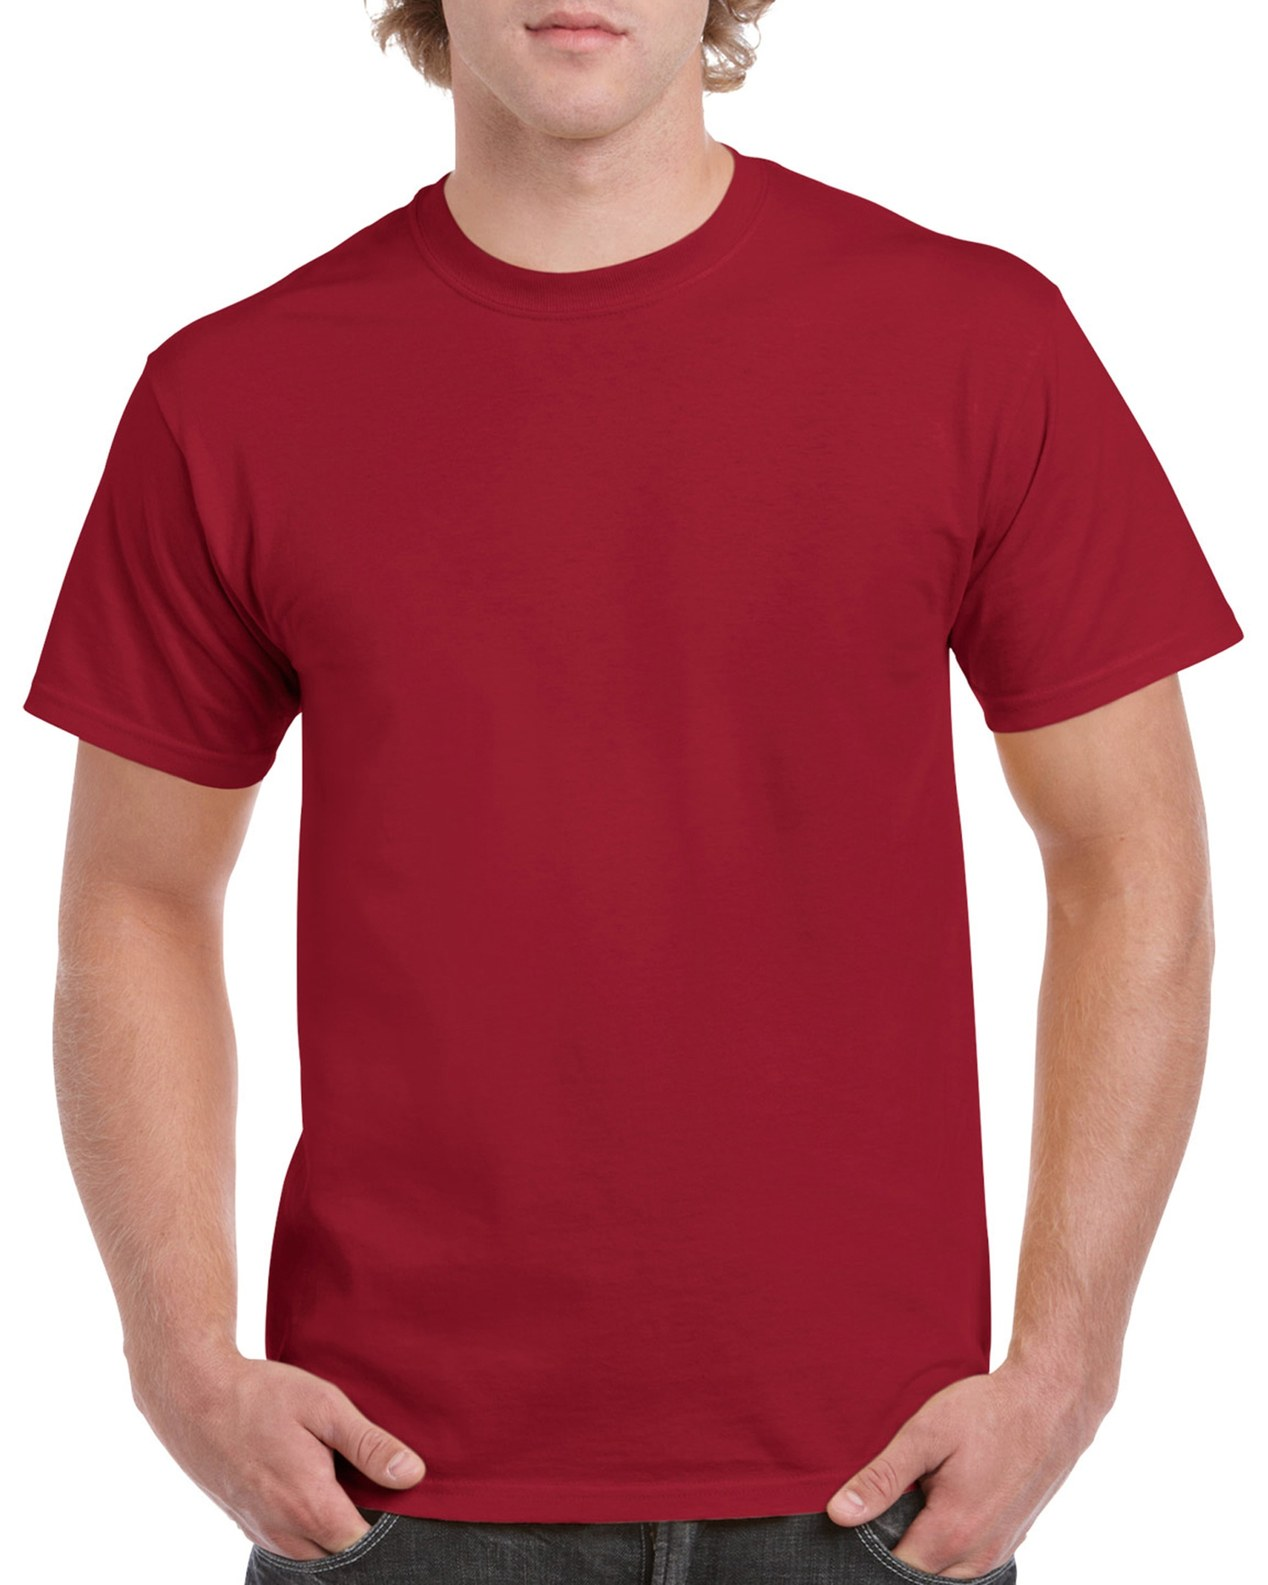 c5d01e60 5000 | Gildan® Heavy Cotton™ | 5.3 oz/yd² | Adult T-Shirt | Gildan